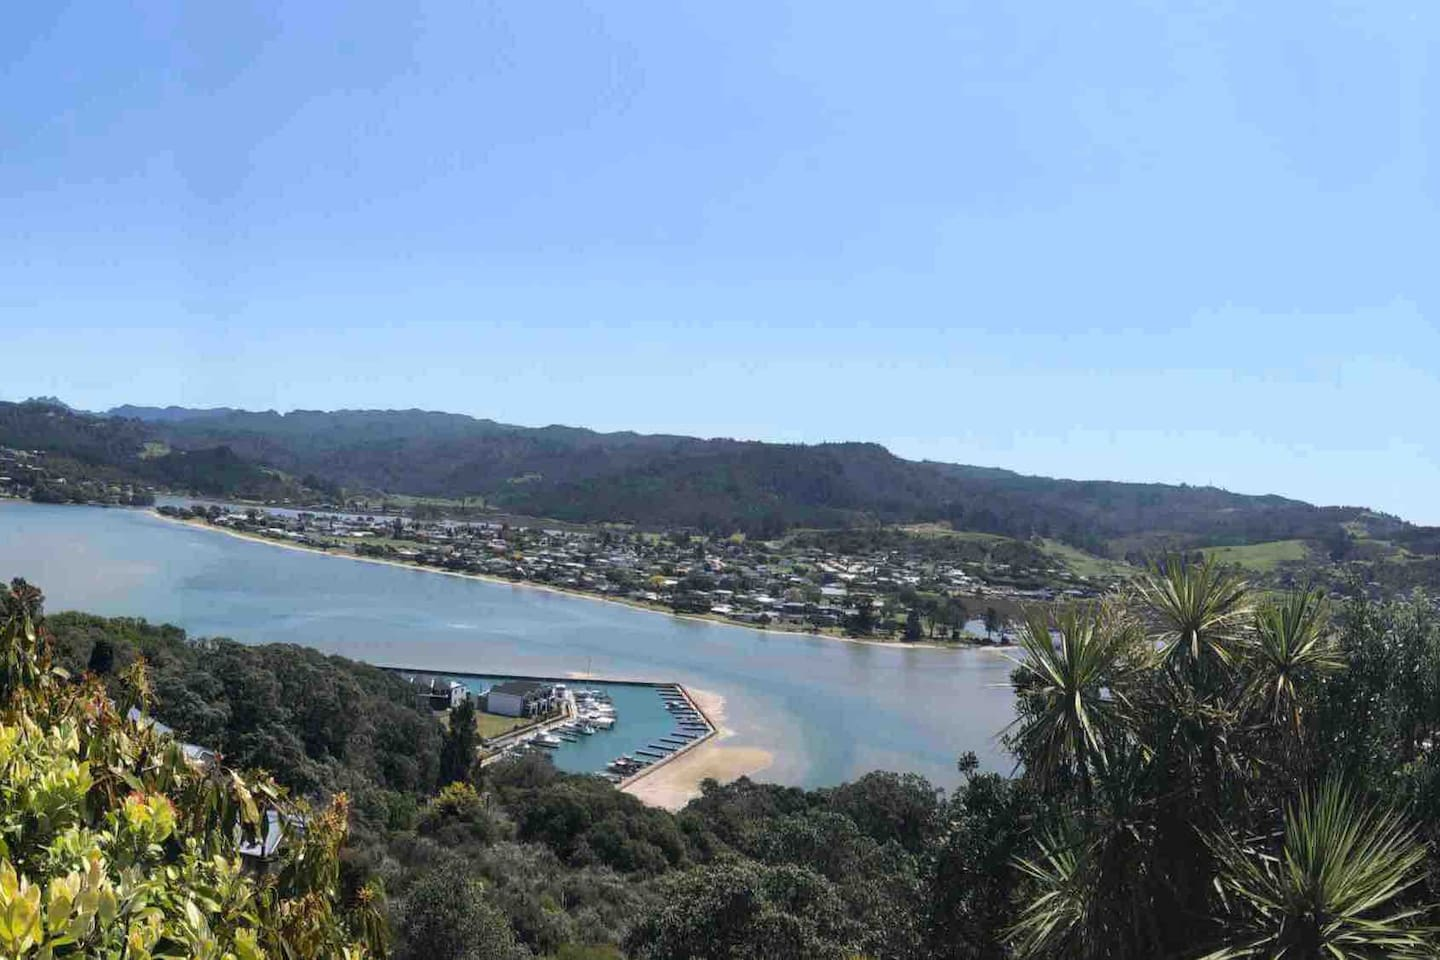 Bach with views to marina, estuary, beach and pinnacle hills.